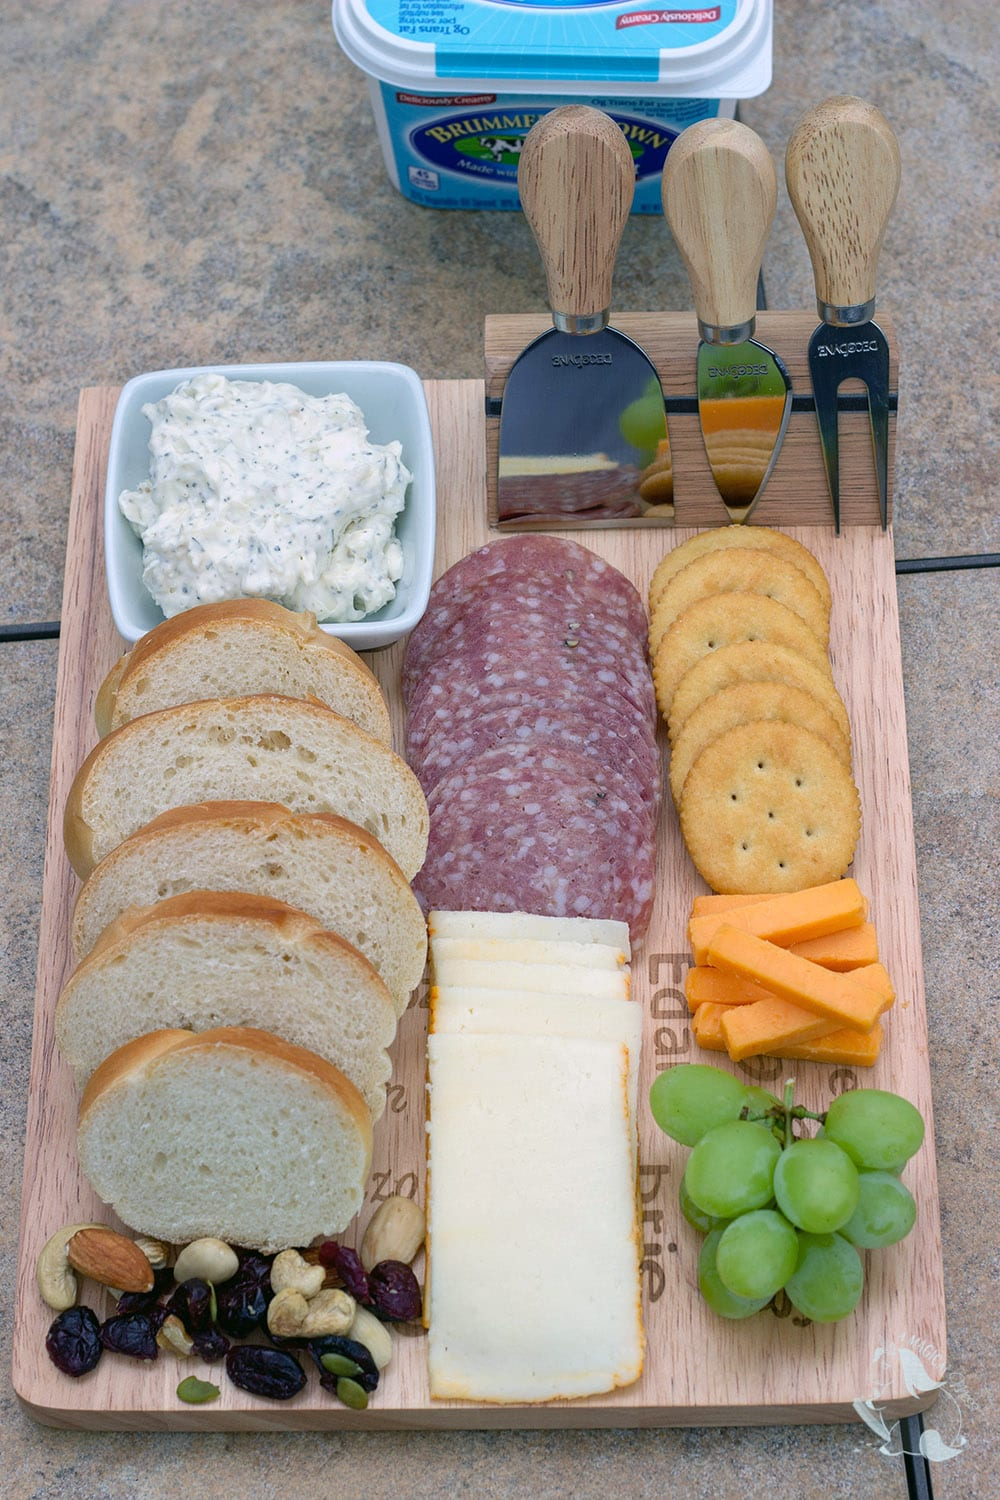 Meat and cheese board with garlic spread for bread